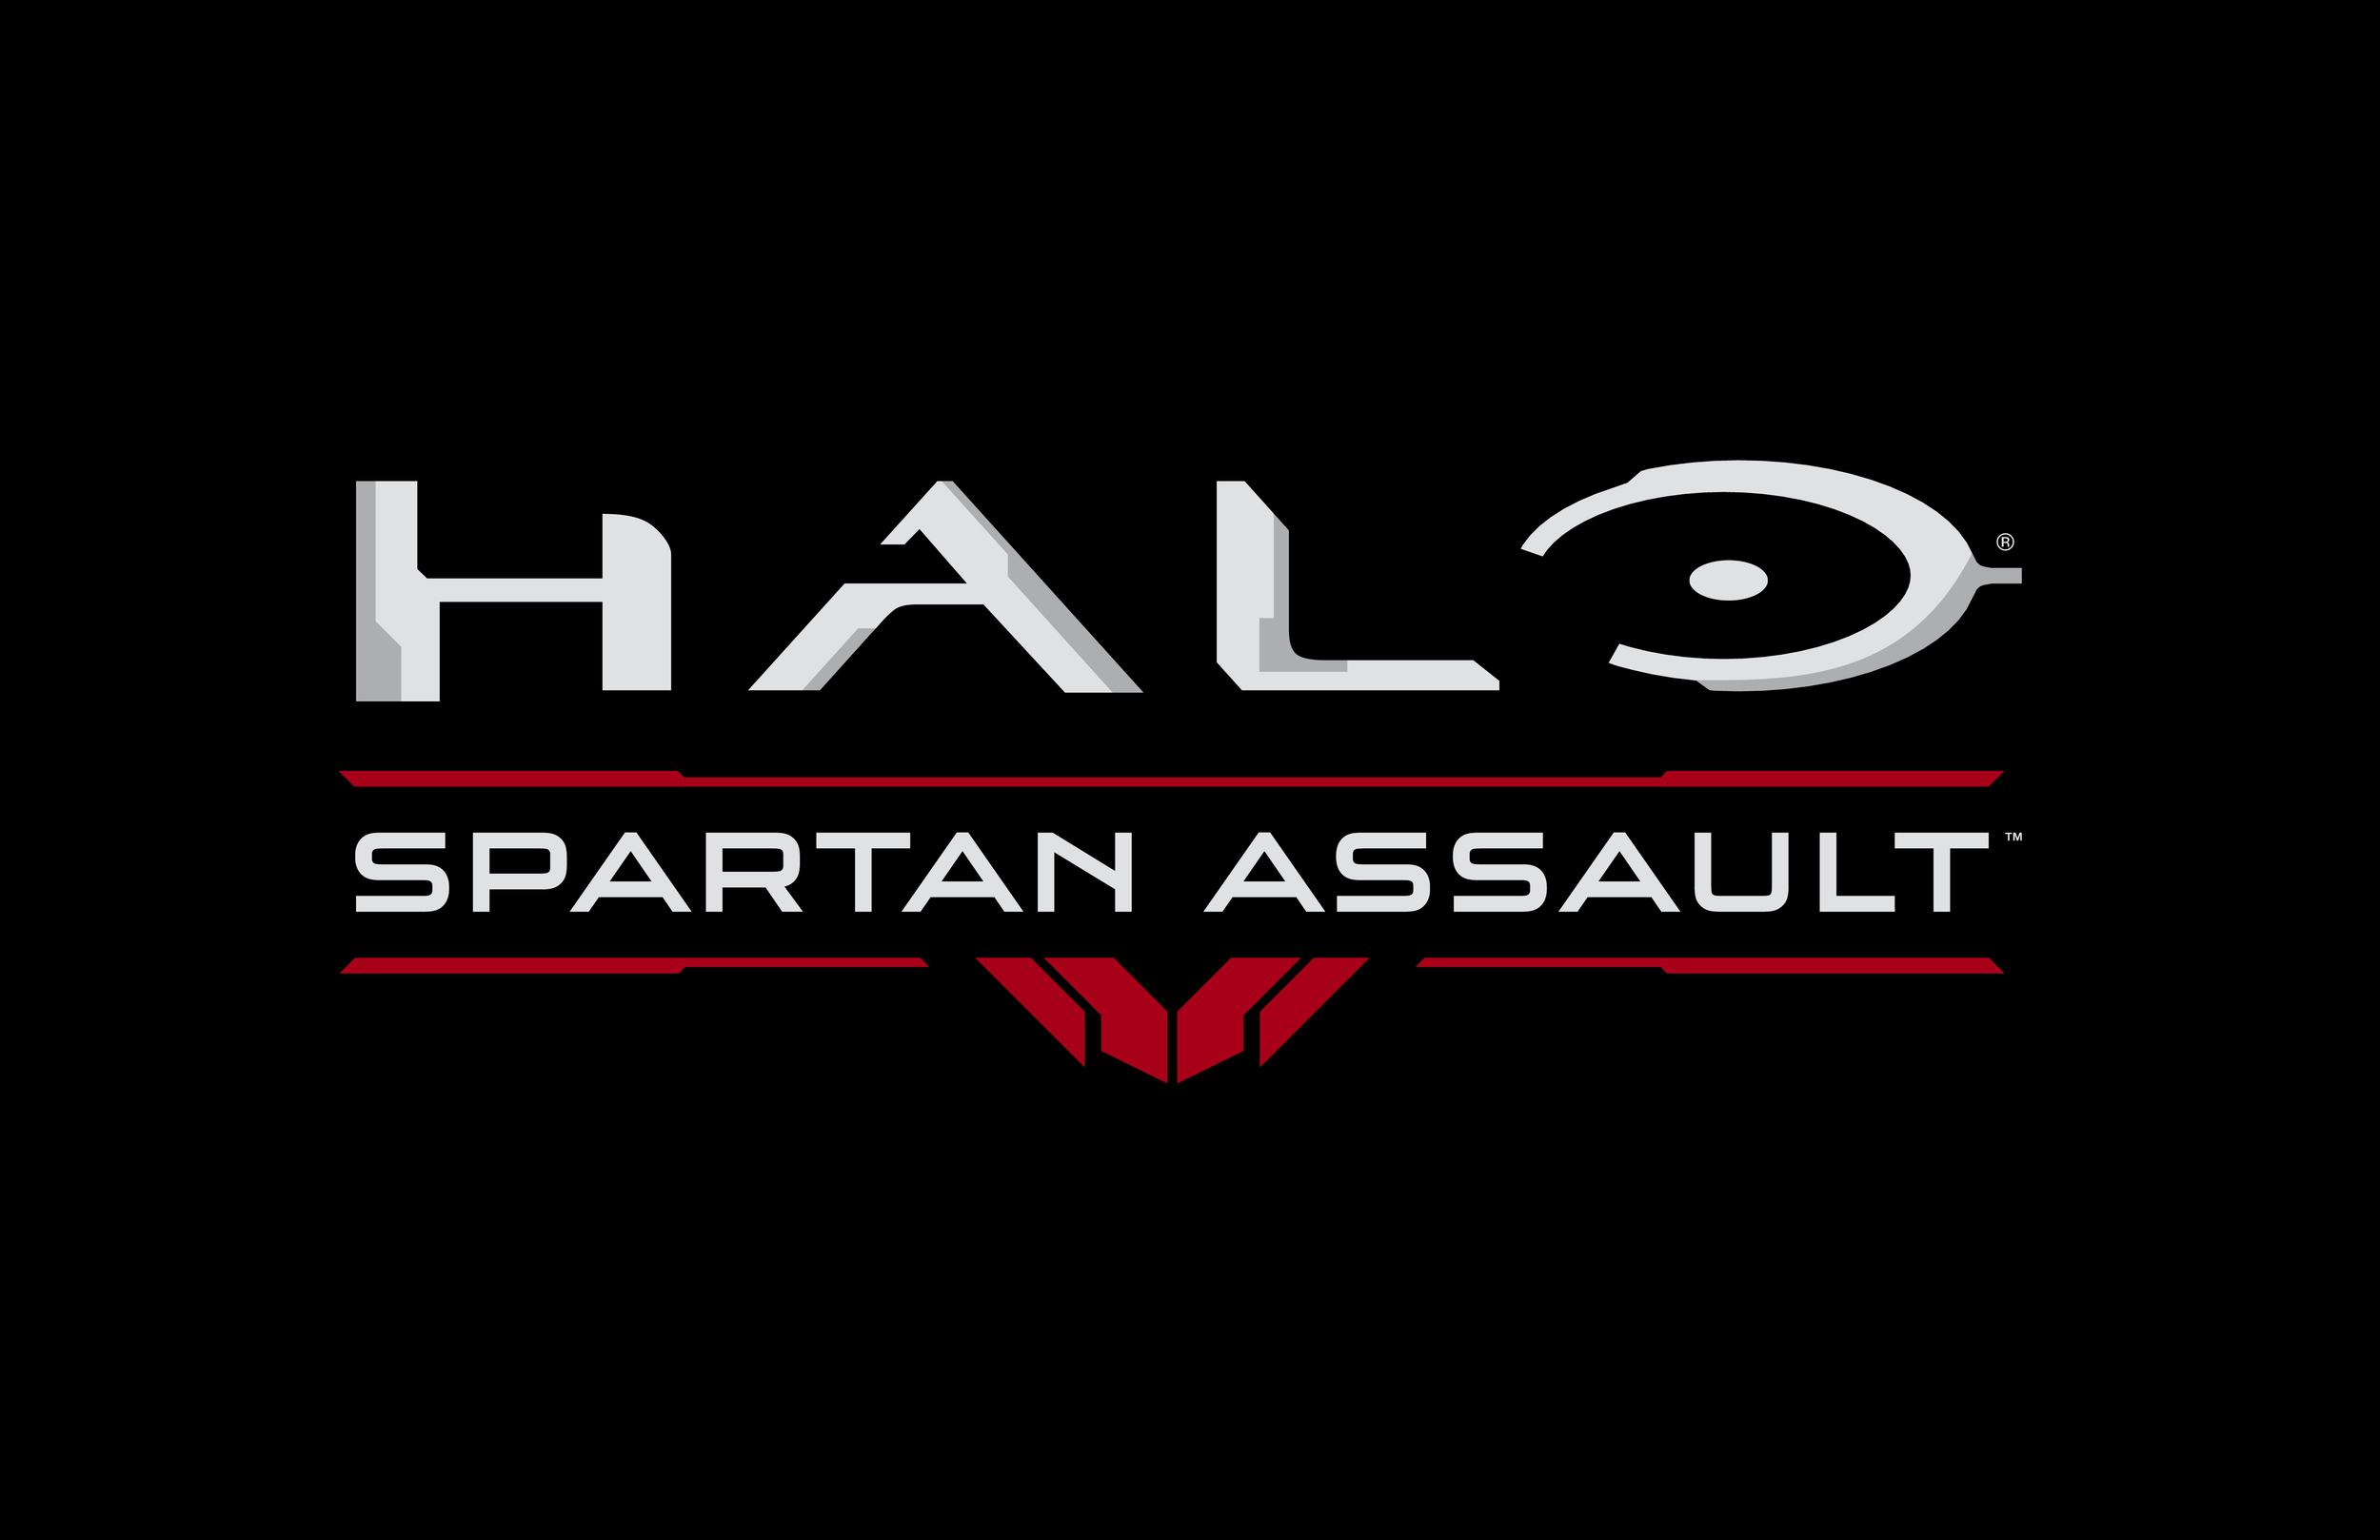 Halo Spartan Assault Logo On BLACK RGB.jpg